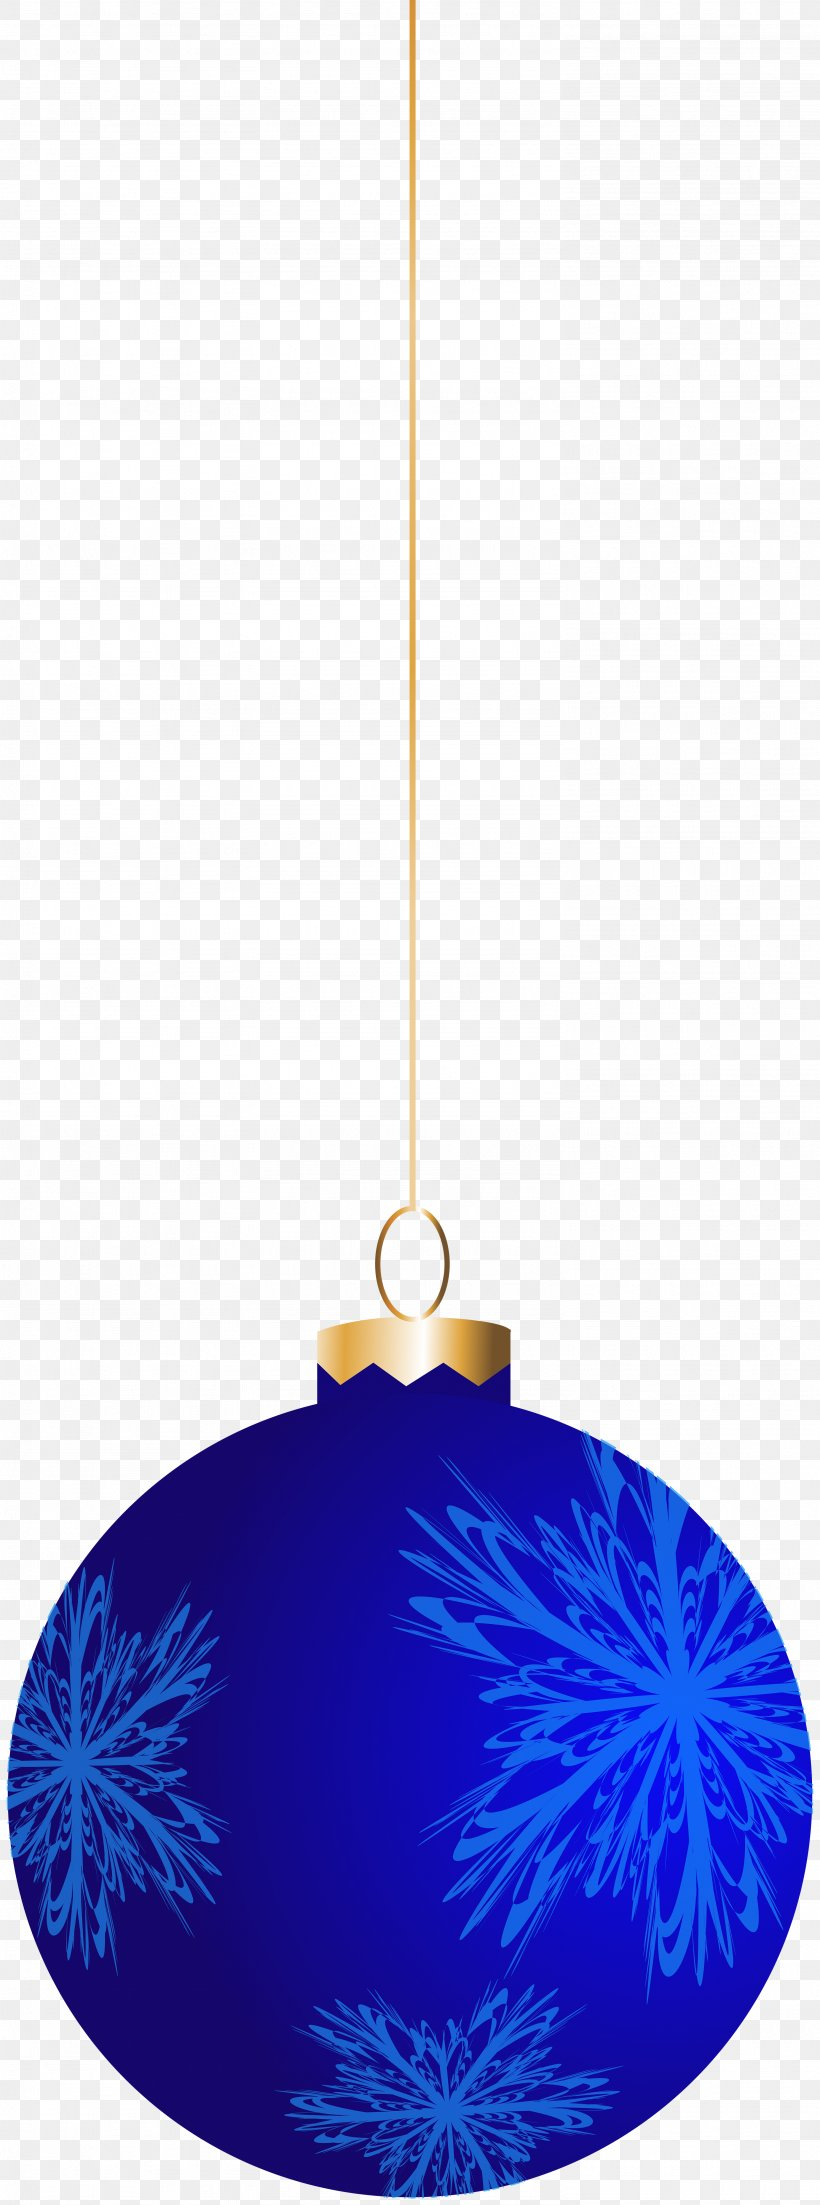 Christmas Ornament Christmas Decoration Santa Claus Clip Art, PNG, 2974x8000px, Christmas Ornament, Ball, Blue, Blue Christmas, Christmas Download Free